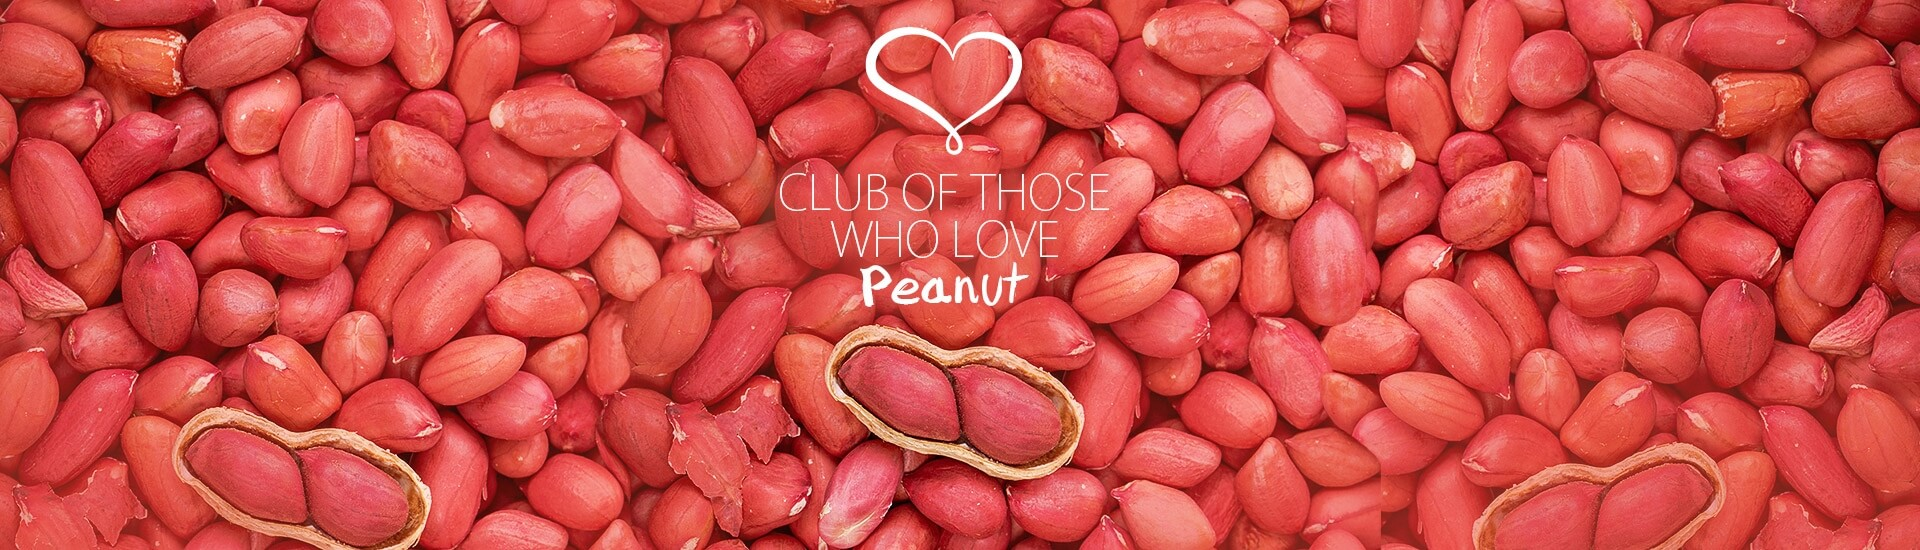 club of those who love